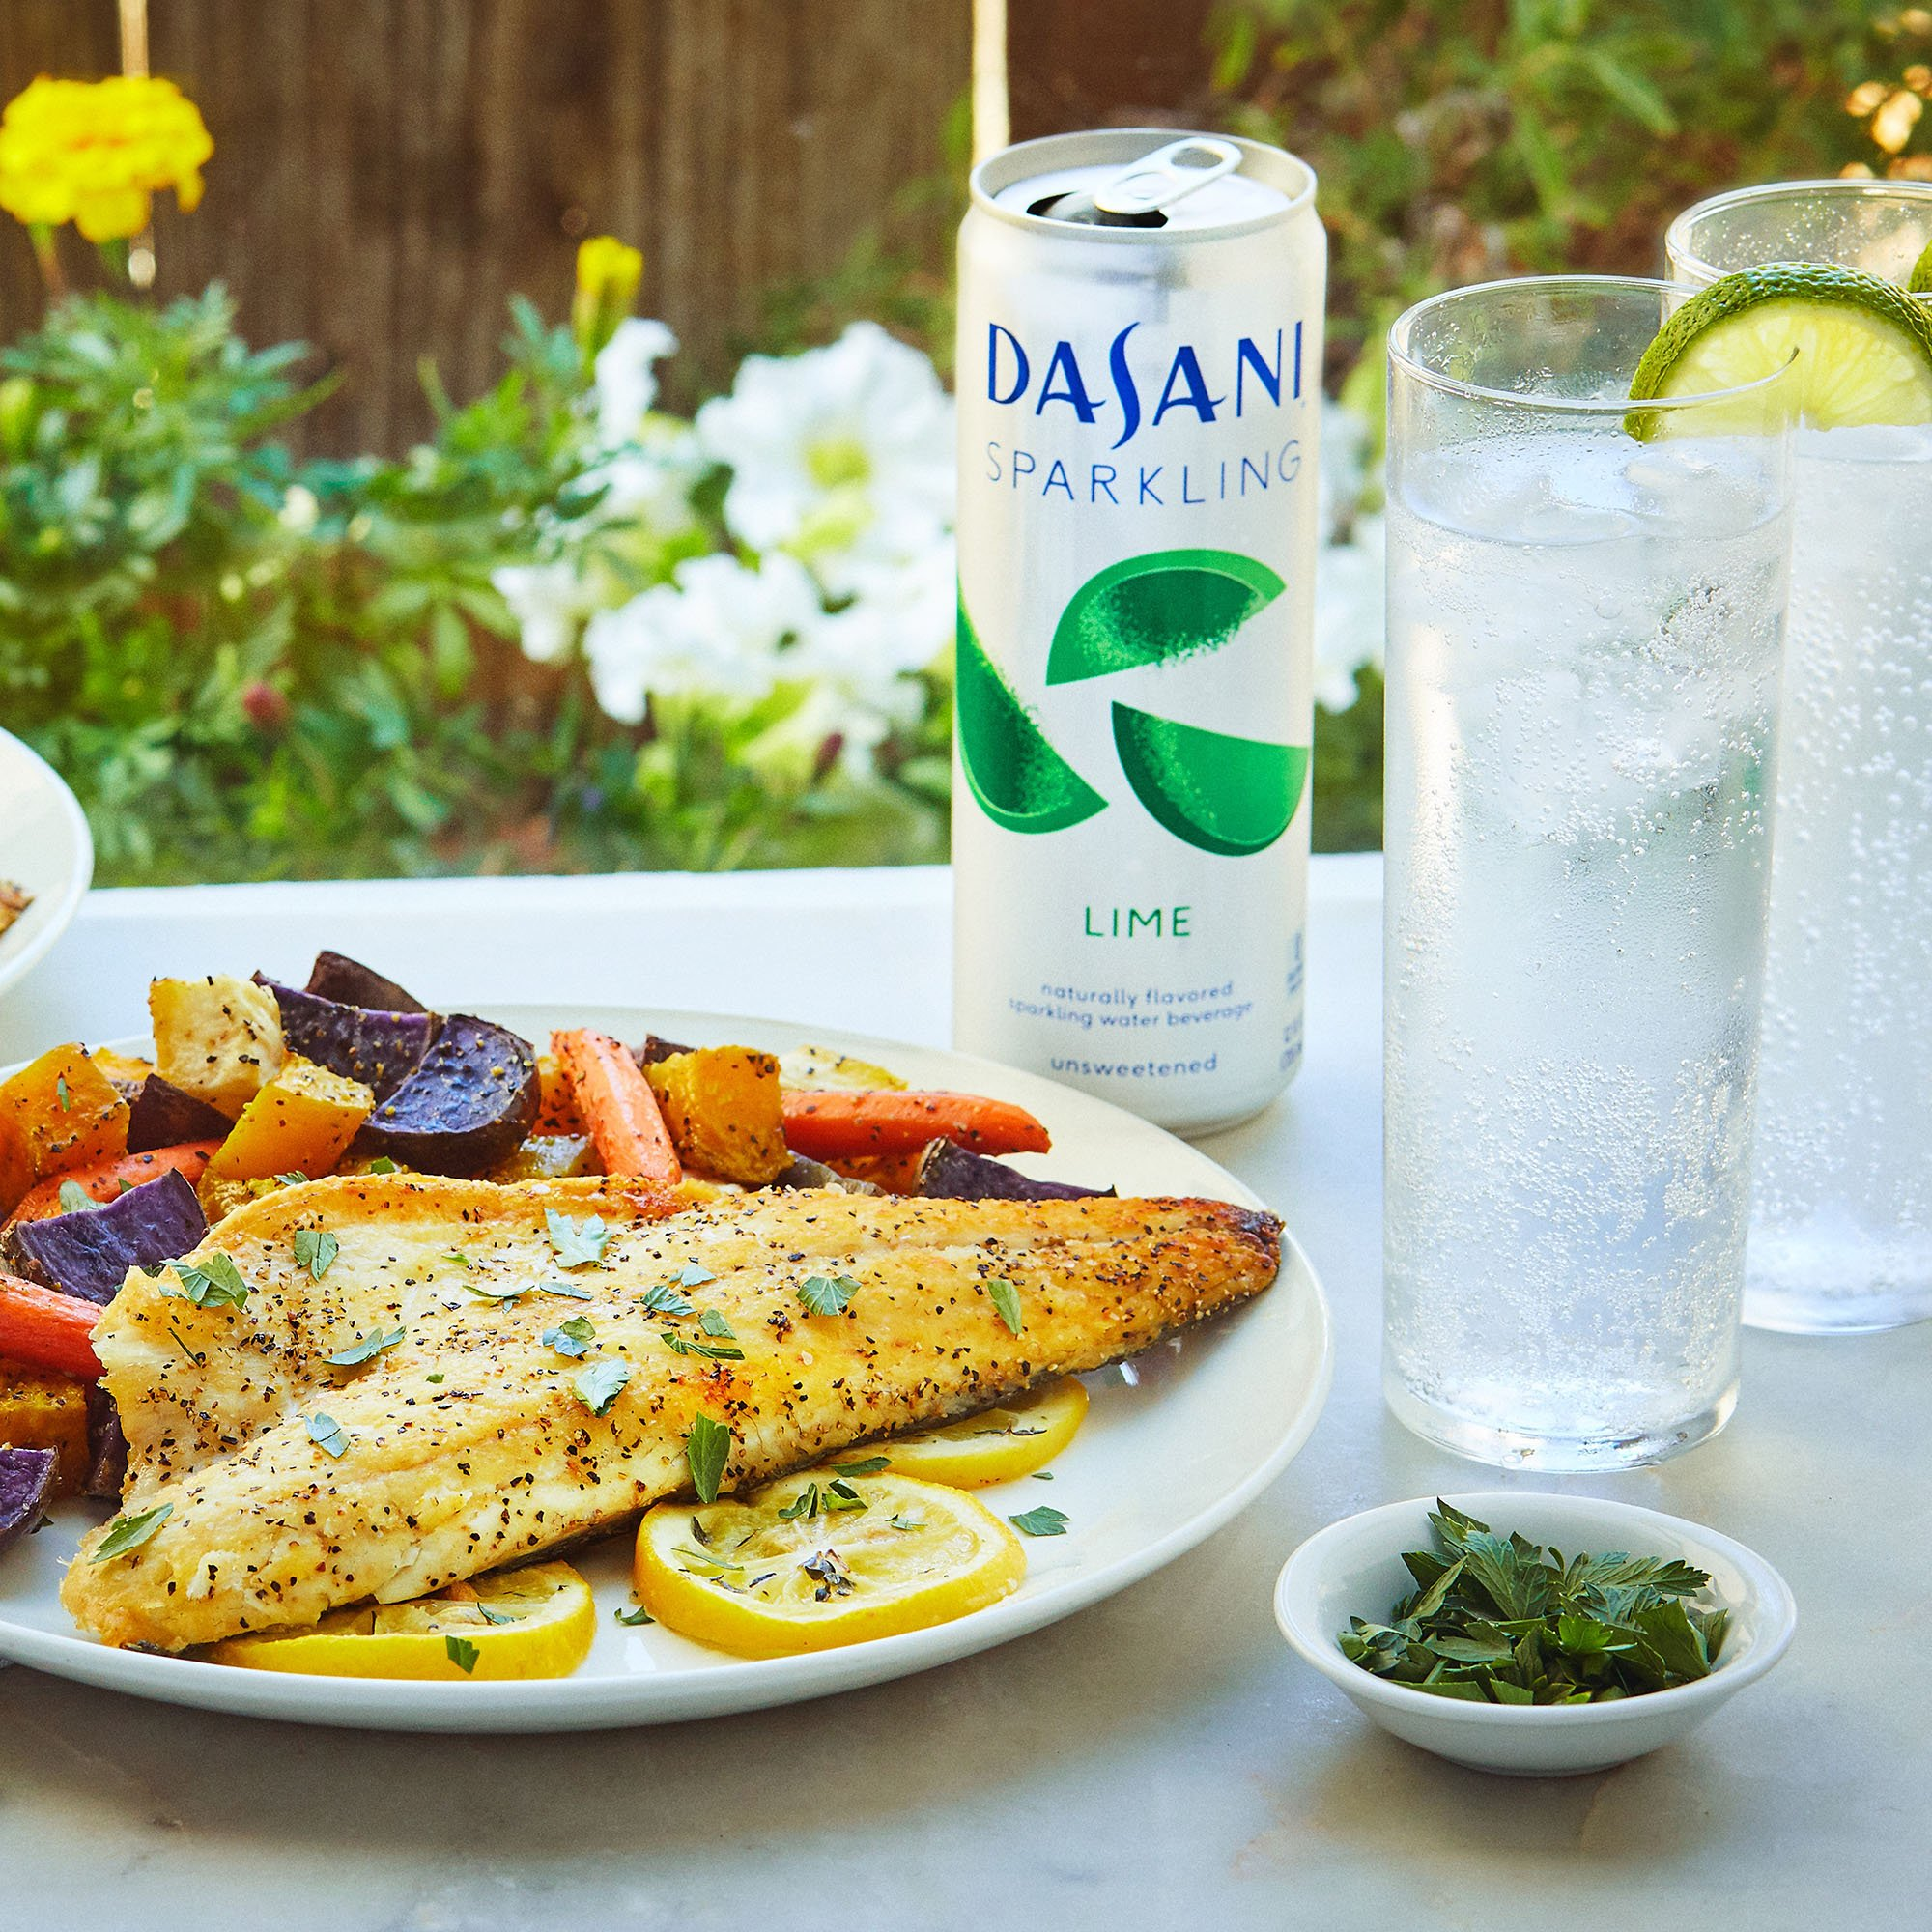 Pan Seared Branzino with Roasted Vegetables by Chef'd with DASANI Sparkling (Dinner for 4)